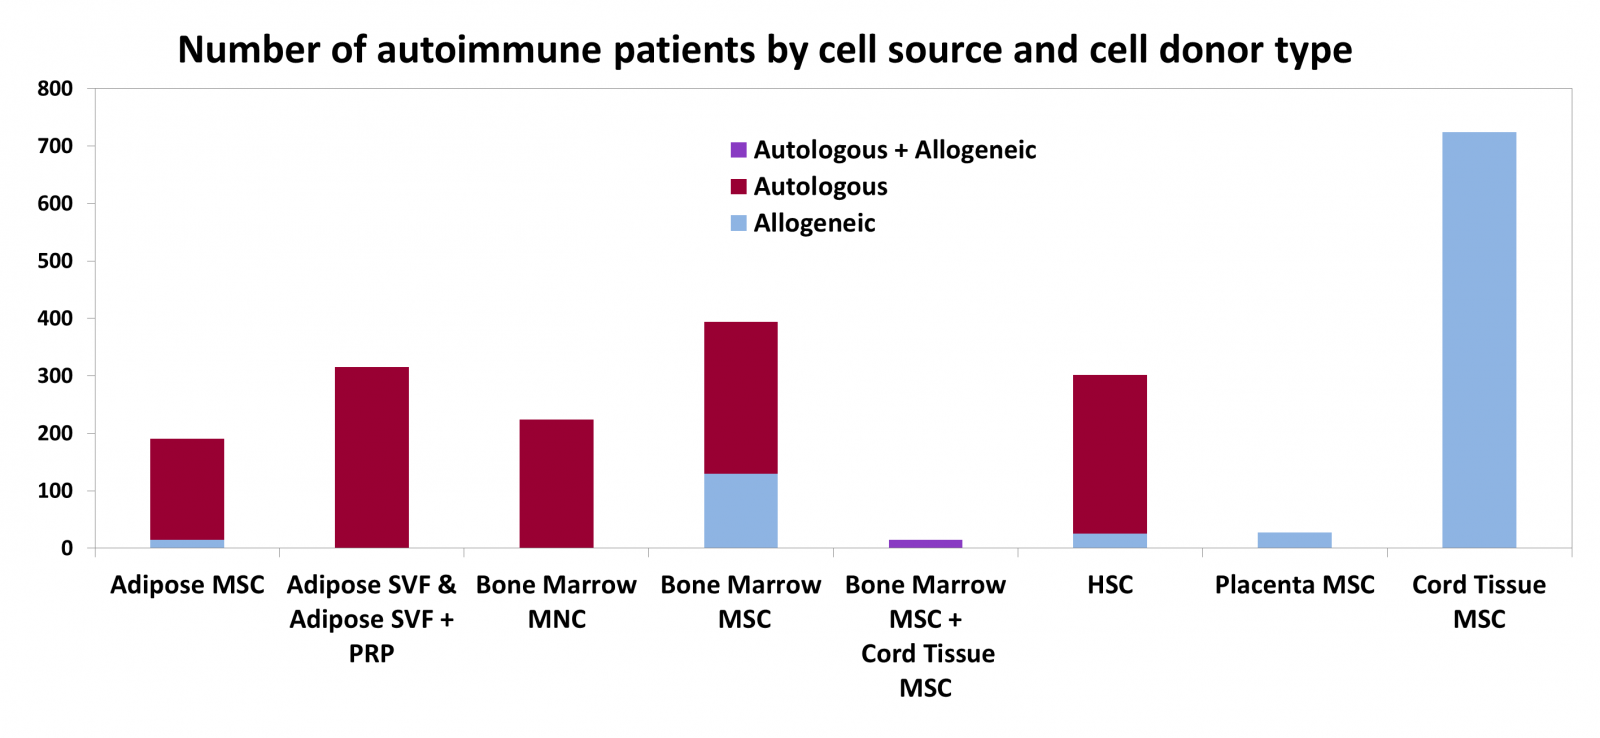 Cell Therapy Clinical Trials For AutoImmune Diagnoses 2011